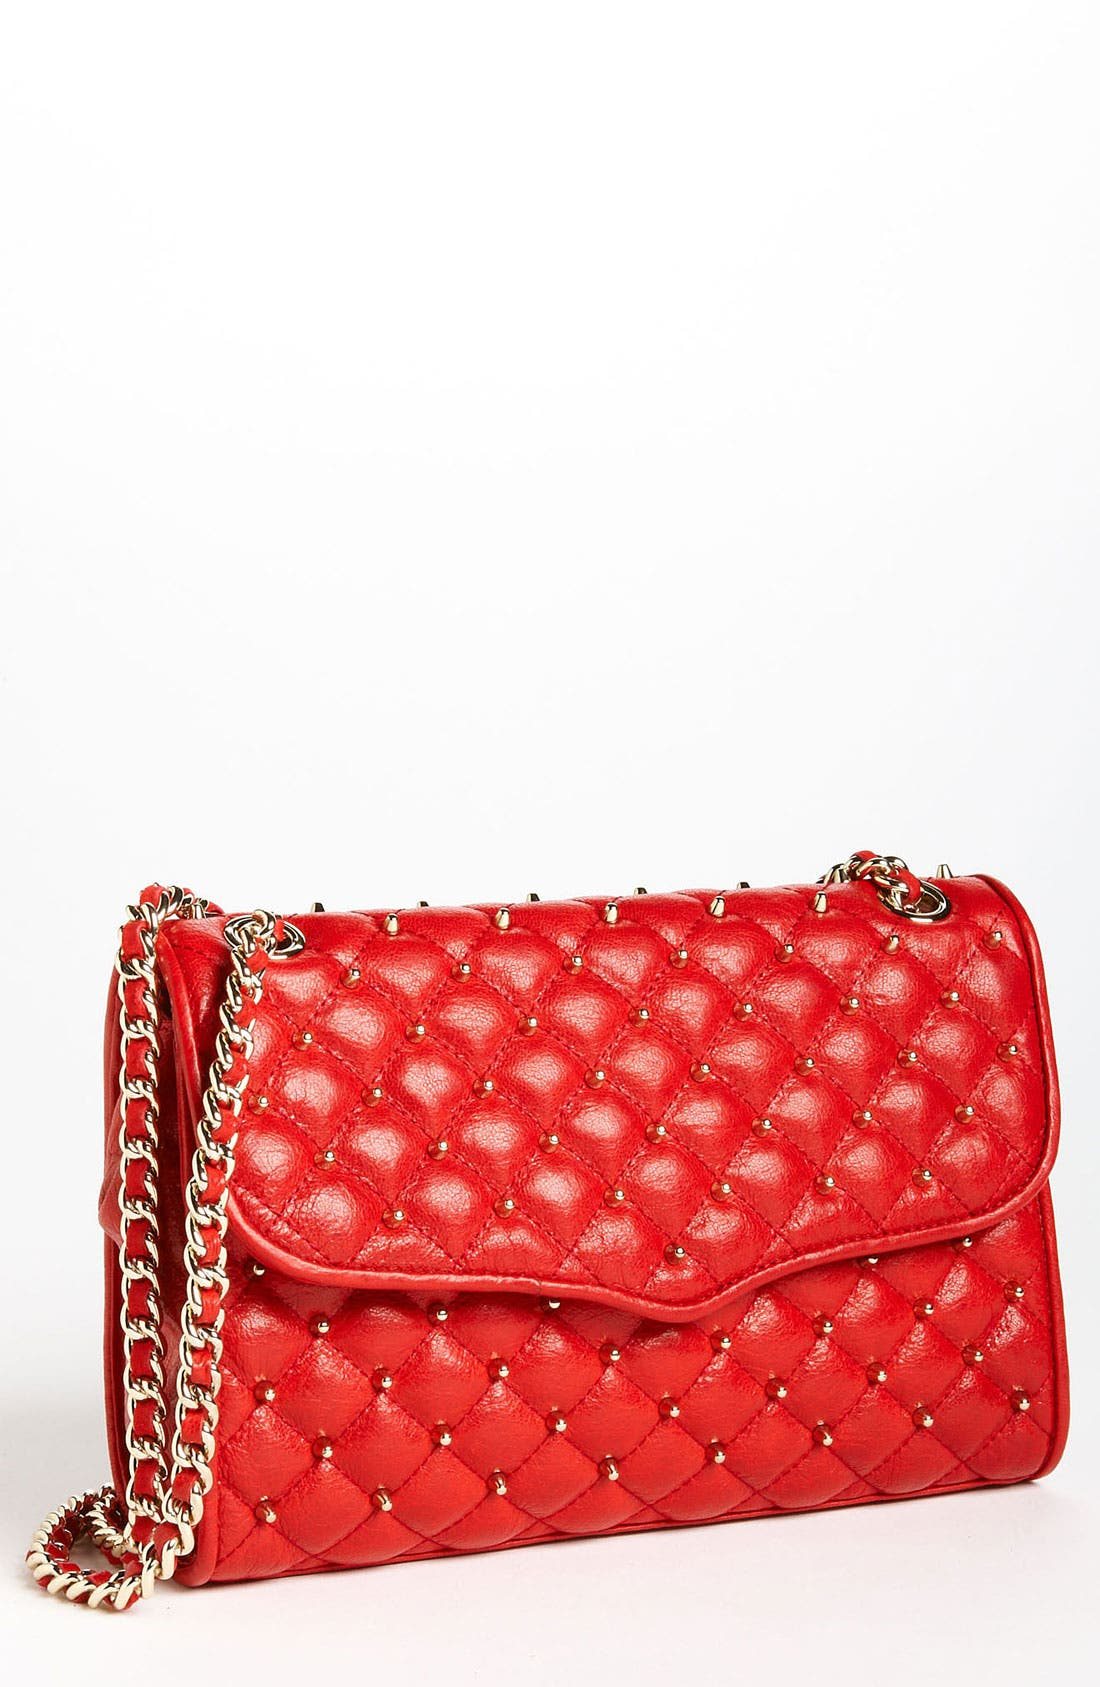 Main Image - Rebecca Minkoff 'Affair' Double Chain Shoulder Bag